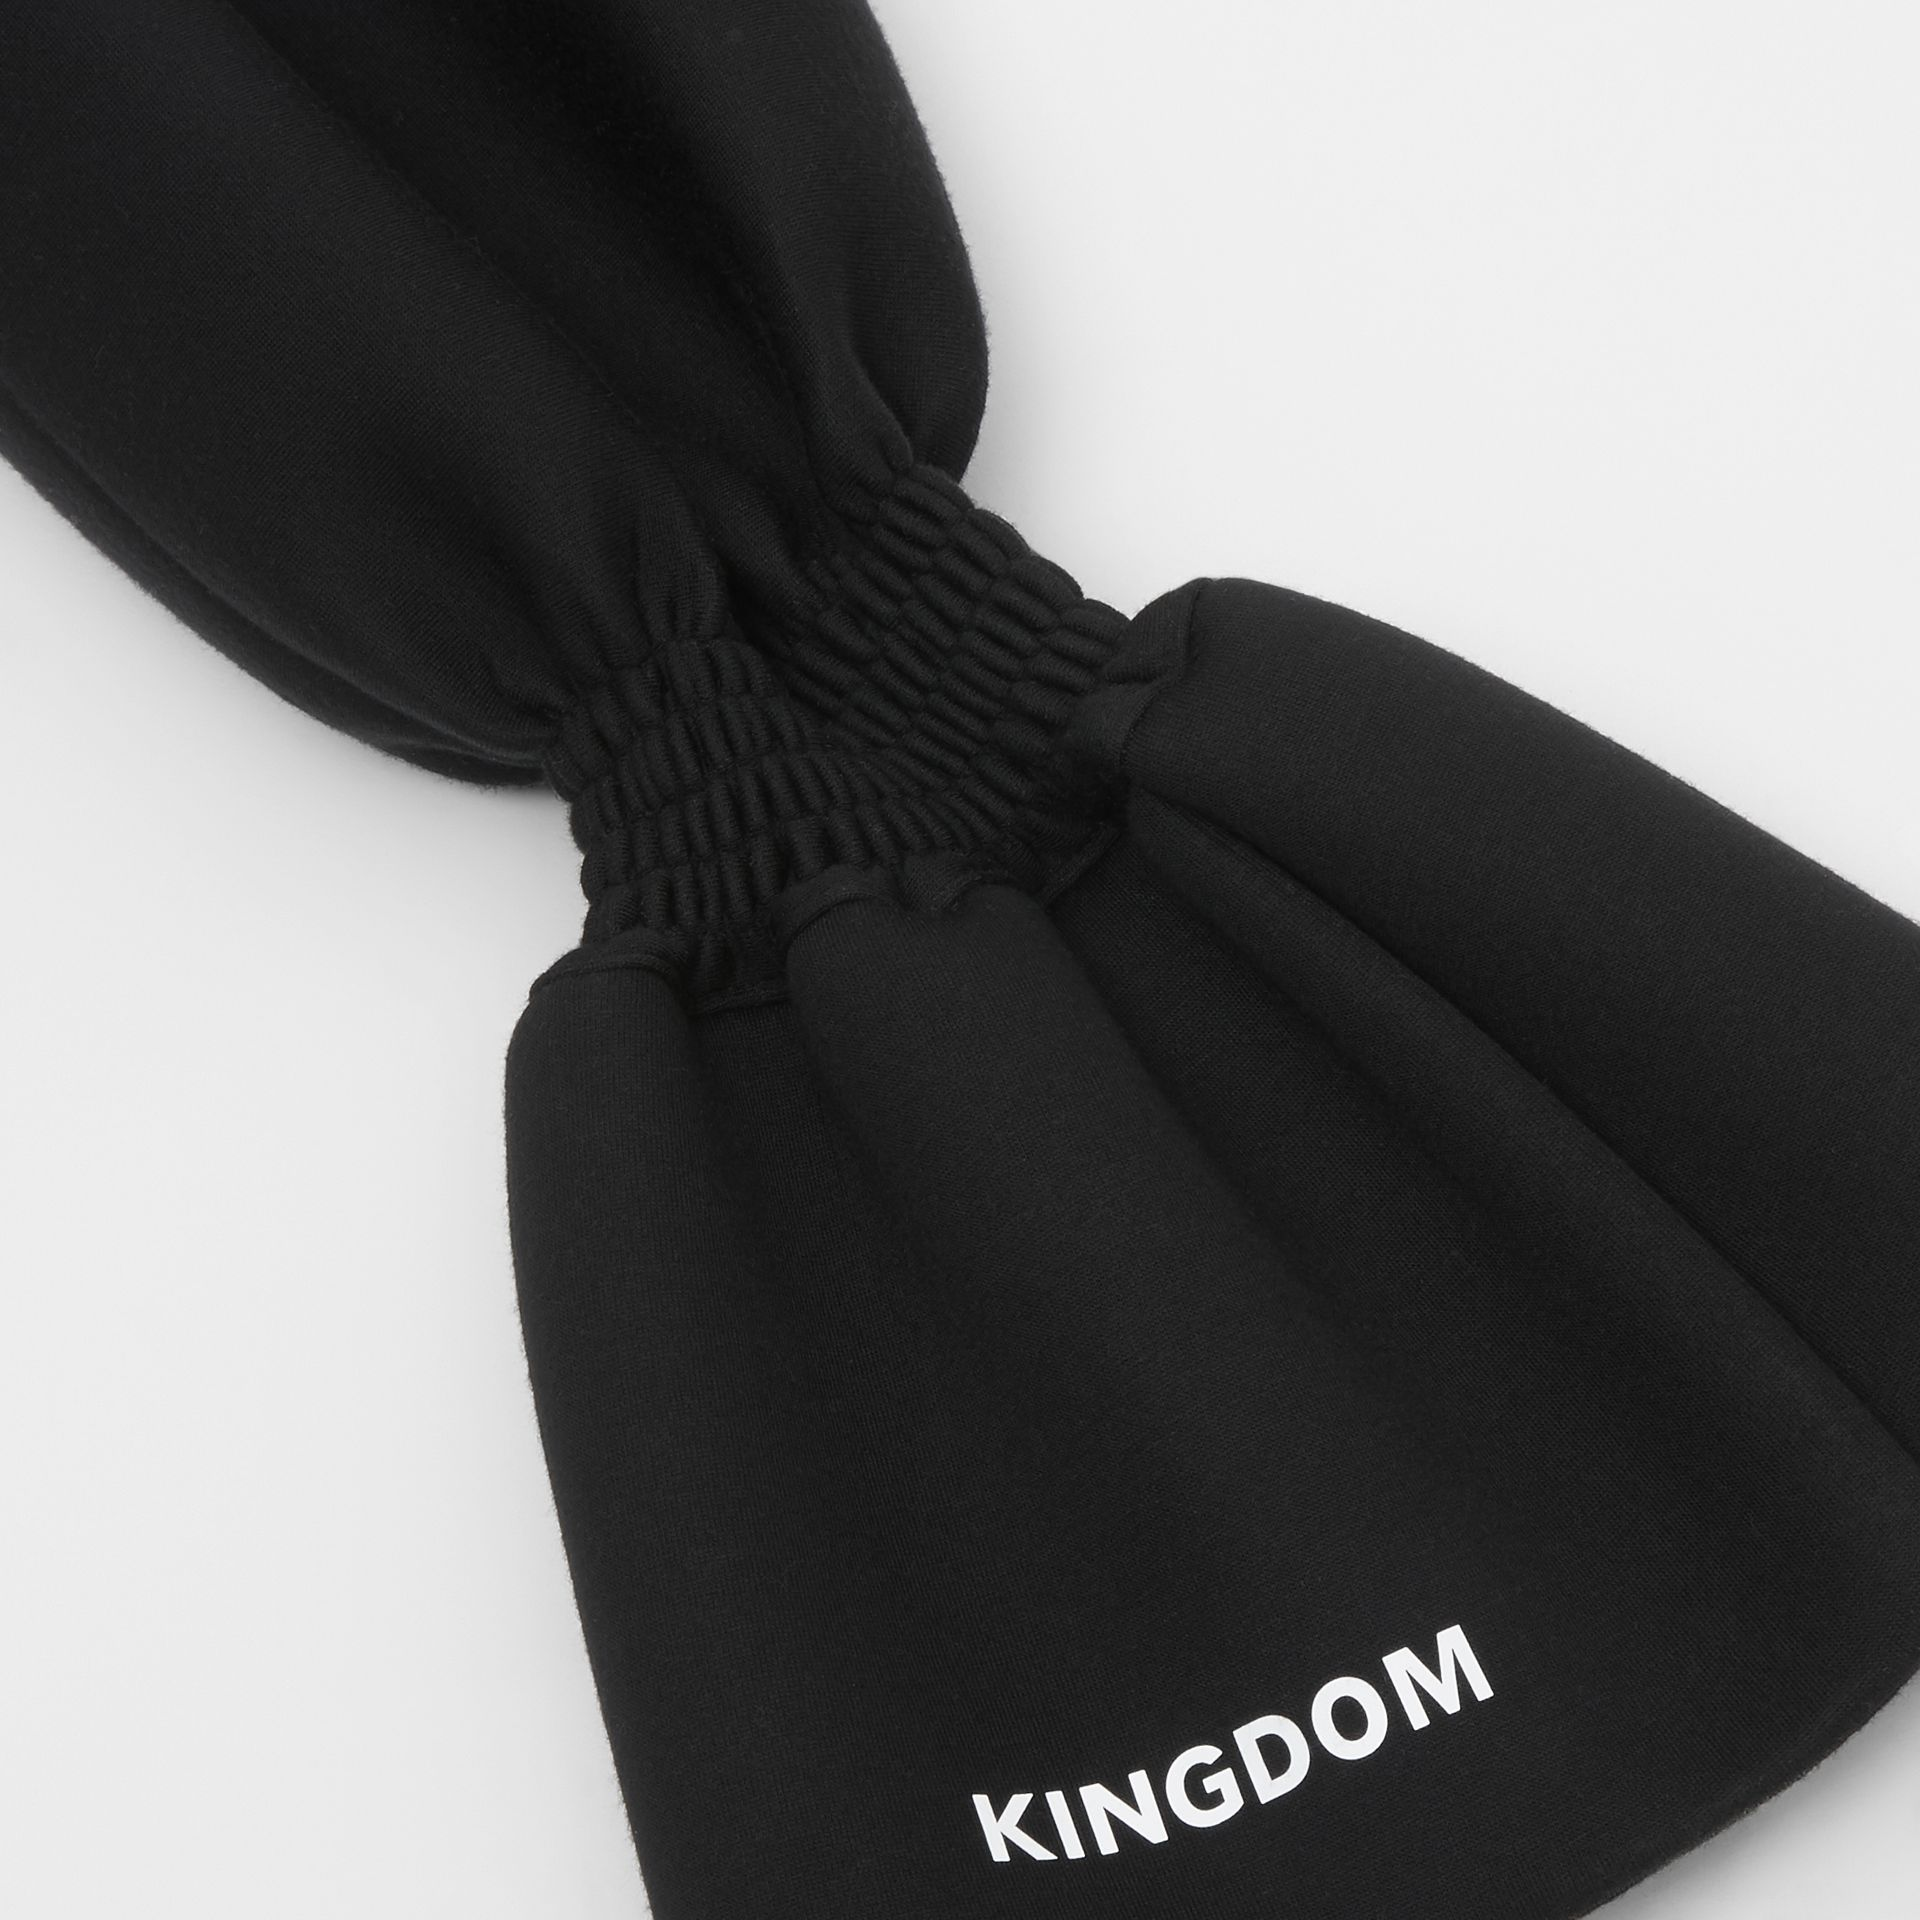 Kingdom Print Neoprene Puff Sleeves in Black - Women | Burberry - gallery image 9